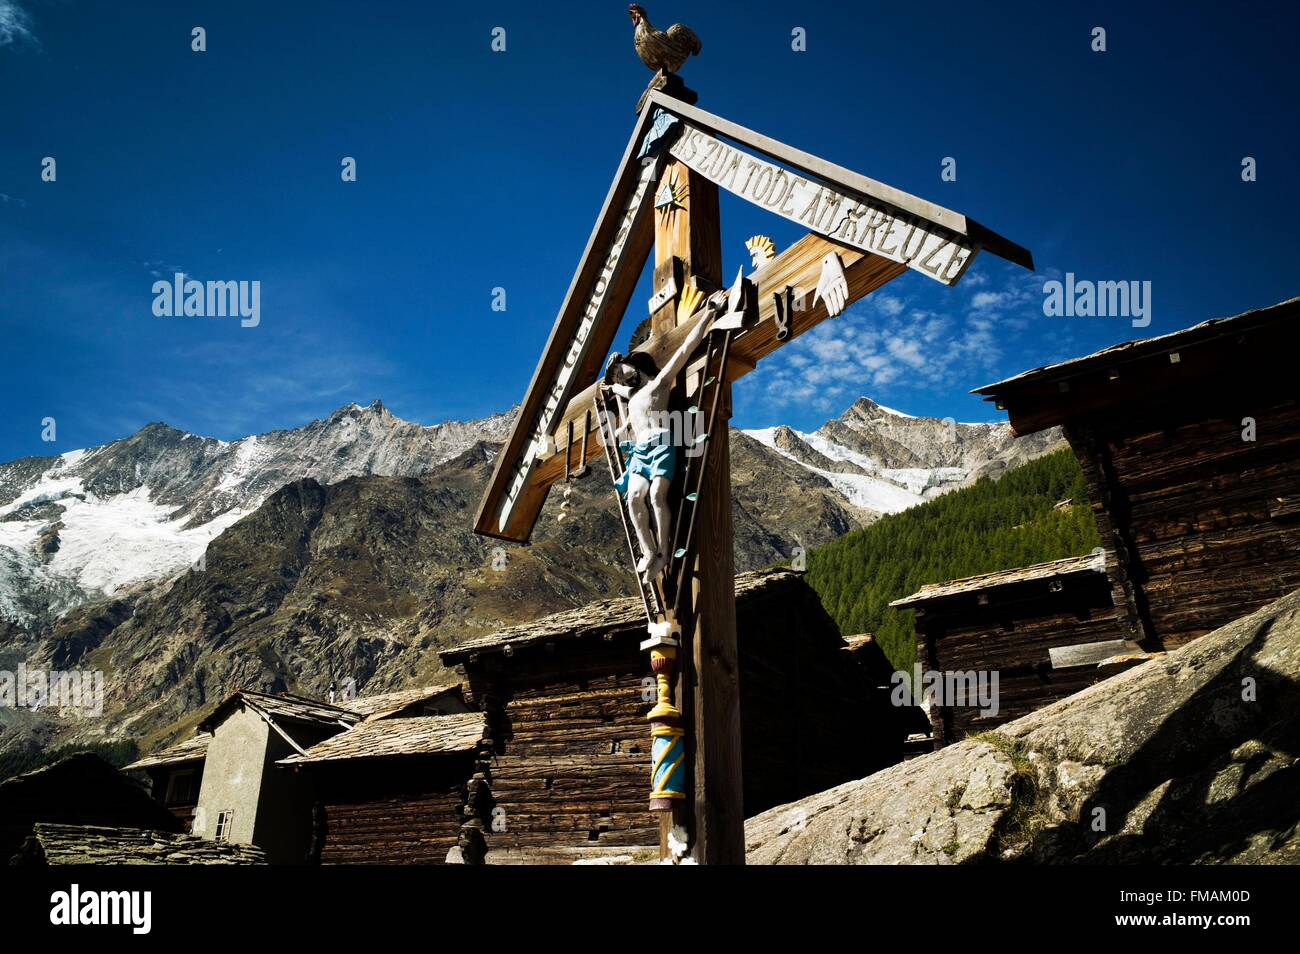 Switzerland, Canton of Valais, Saas Valley, Saas-Fee, 1800 m, Cross of the Passion at the entrance of the village, - Stock Image